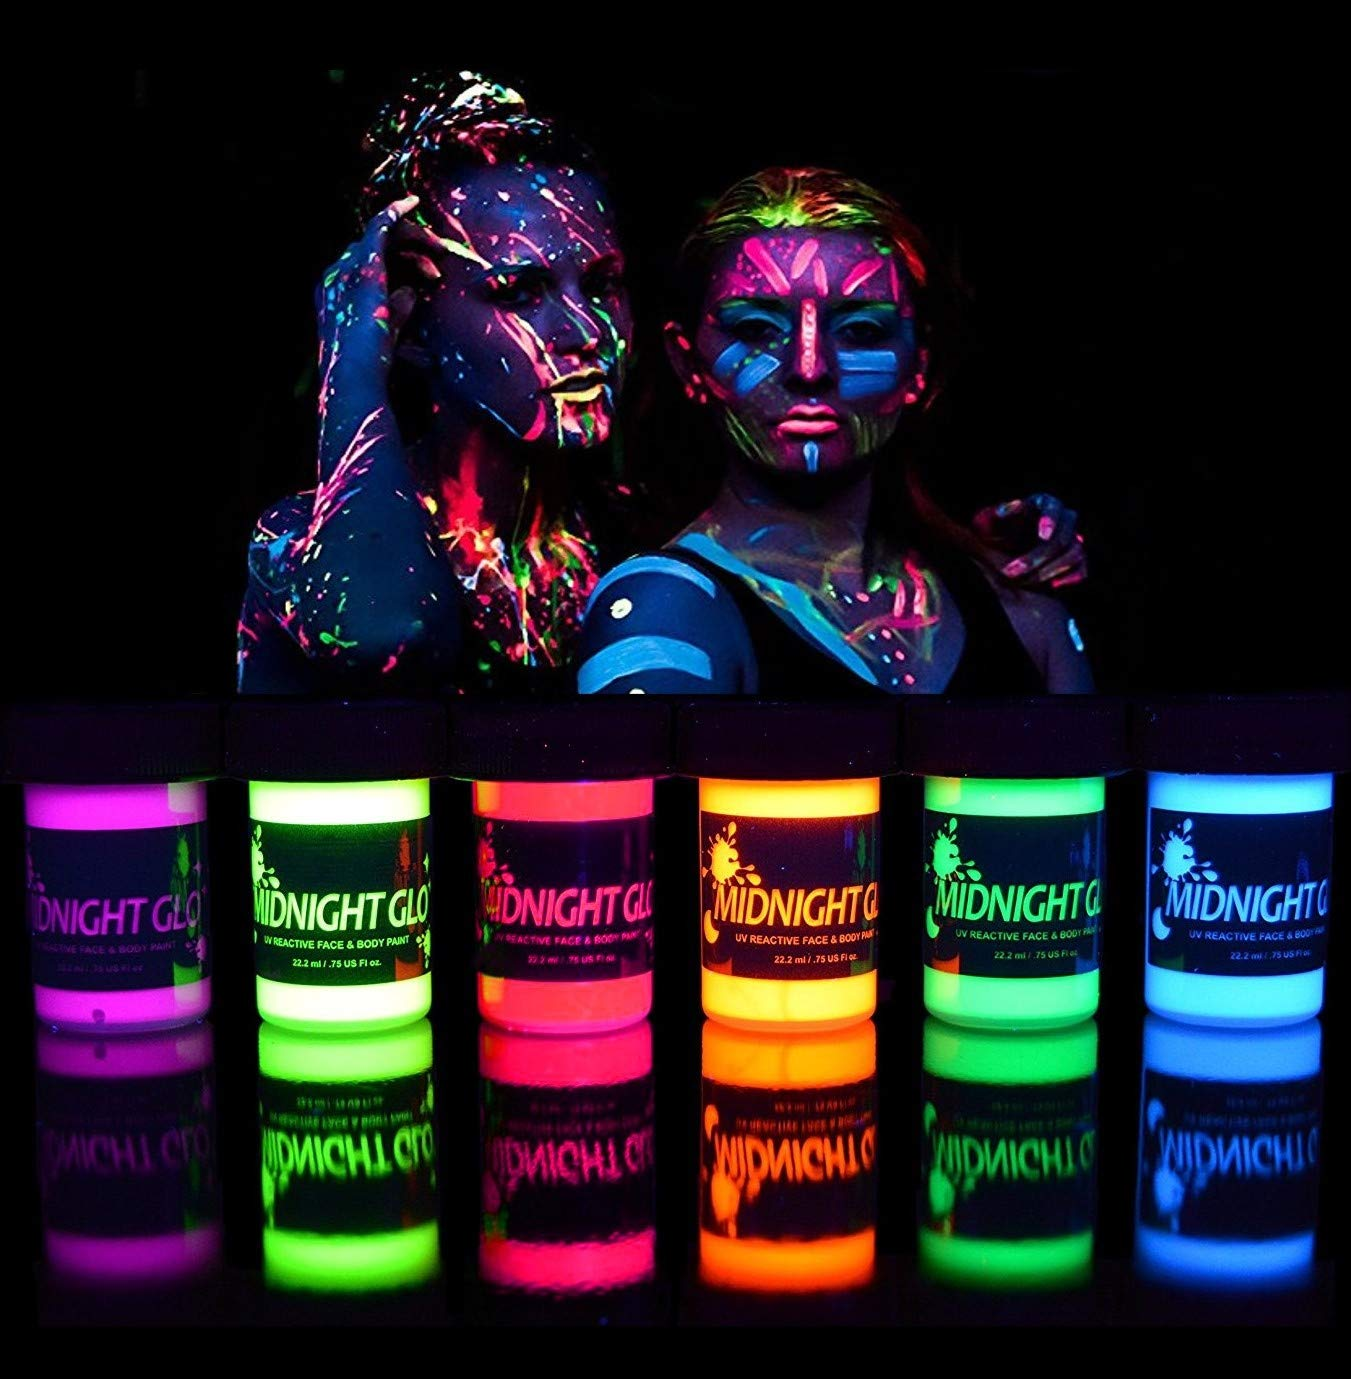 UV Neon Face   Body Paint Glow Kit  6 Bottles 0 75 oz  Each  - Top Rated Blacklight Reactive Fluorescent Paint - Safe  Washable  Non-Toxic  By Midnight Glo